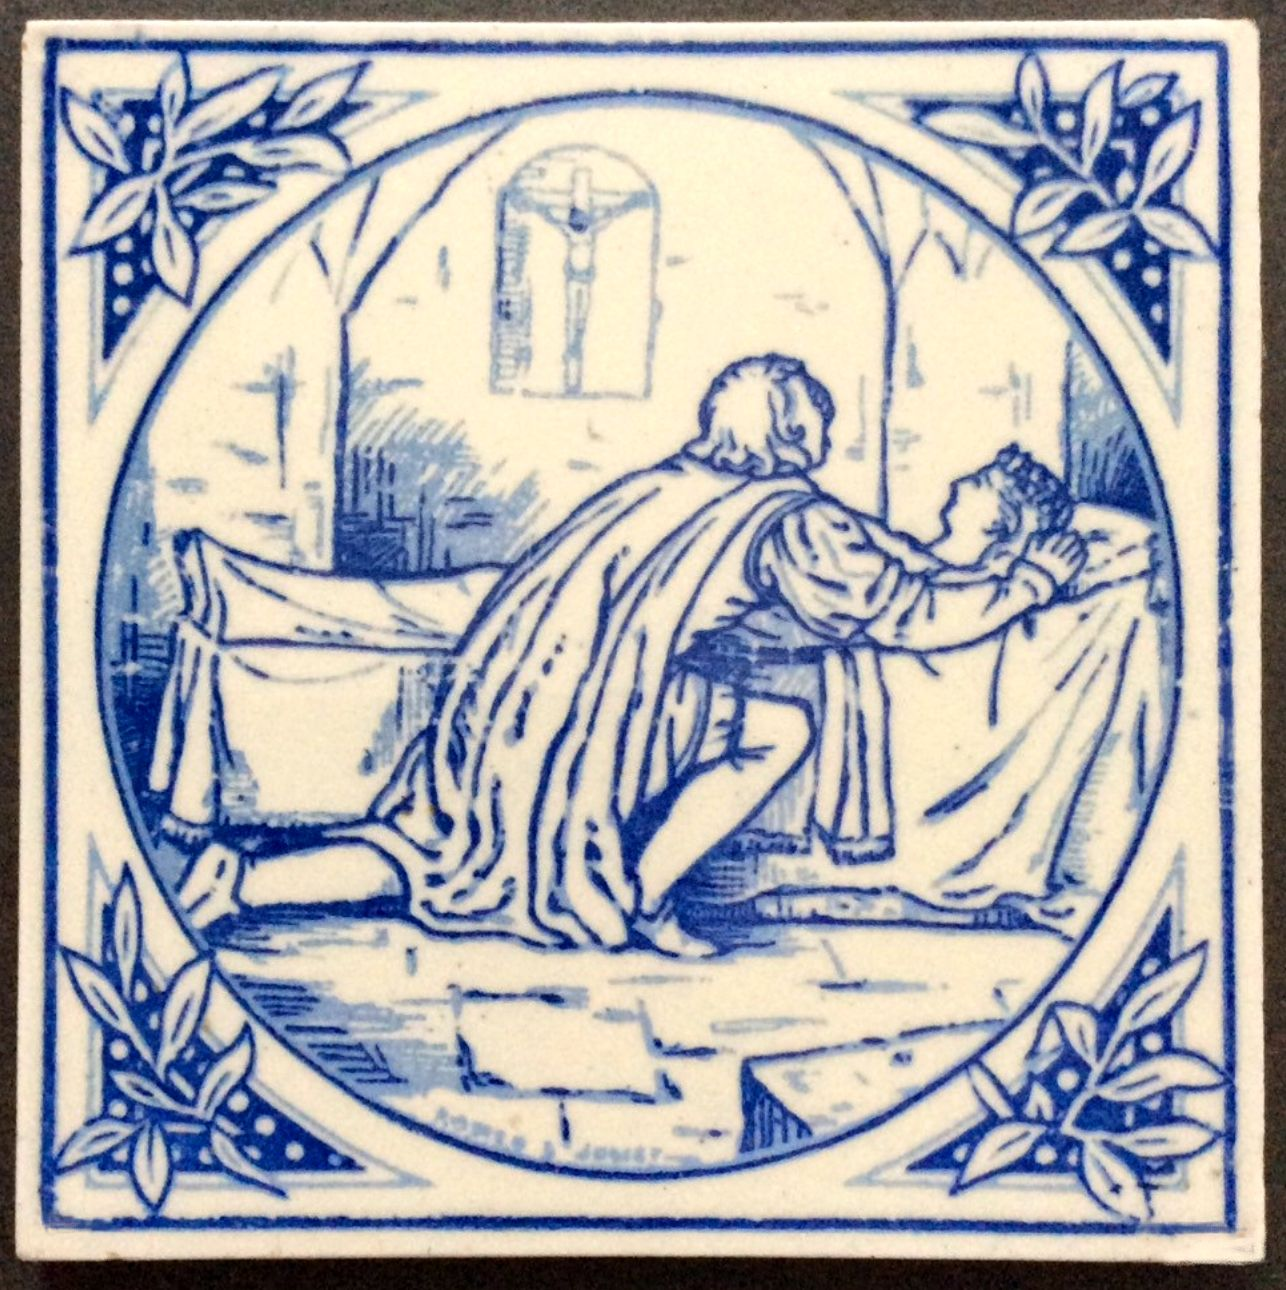 Minton hollins co romeo and juliet tile old tiles 2 ceramic art minton hollins co romeo and juliet tile dailygadgetfo Gallery